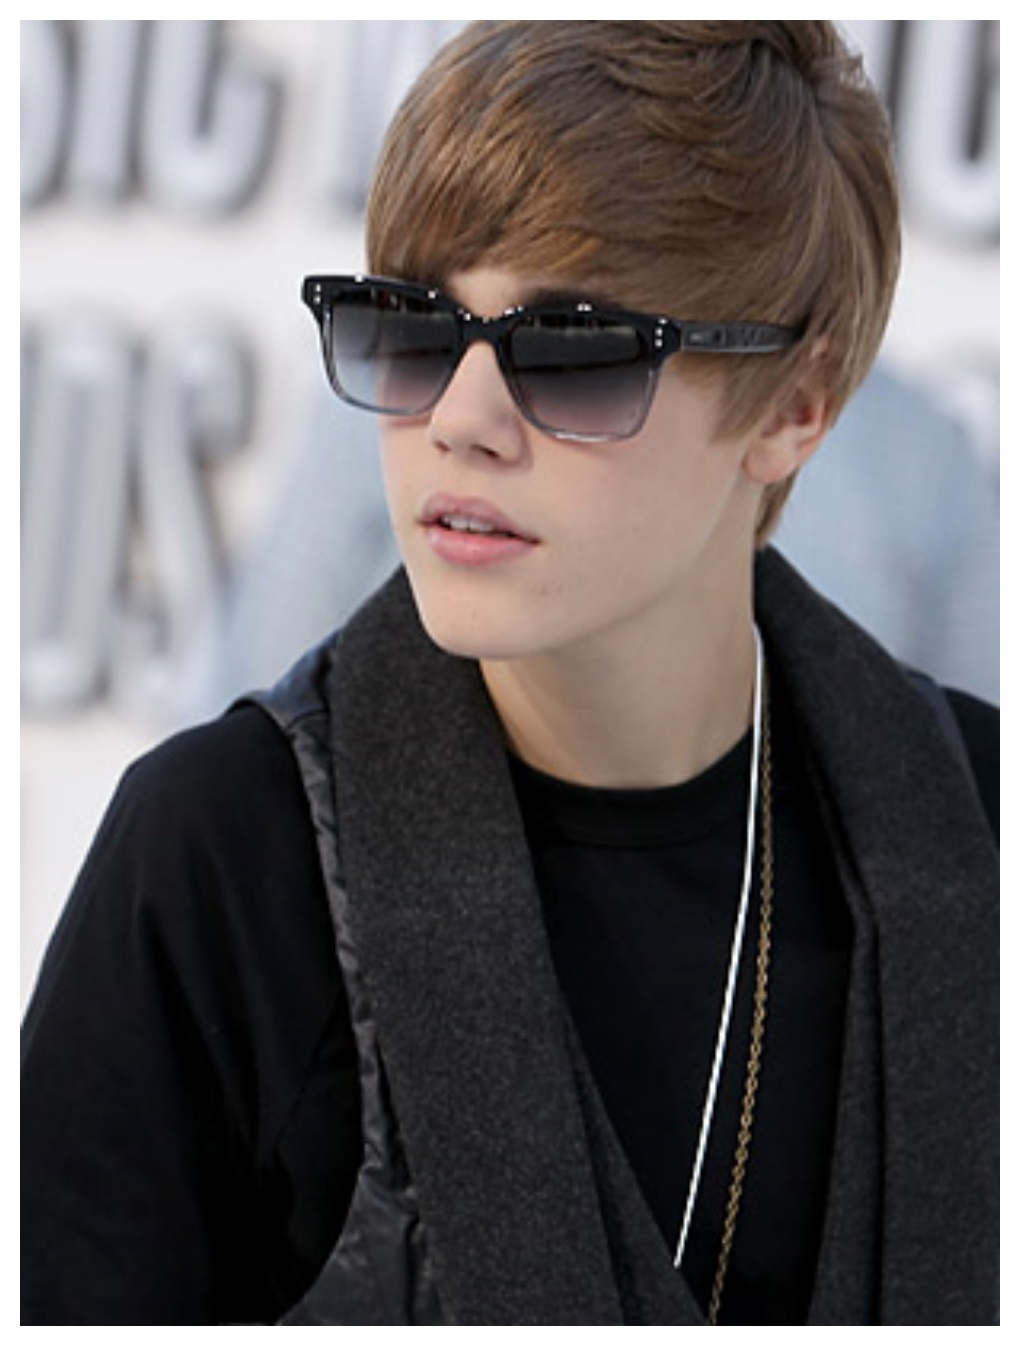 Justin Bieber Hairstyle Images Download Free Download Justin Bieber